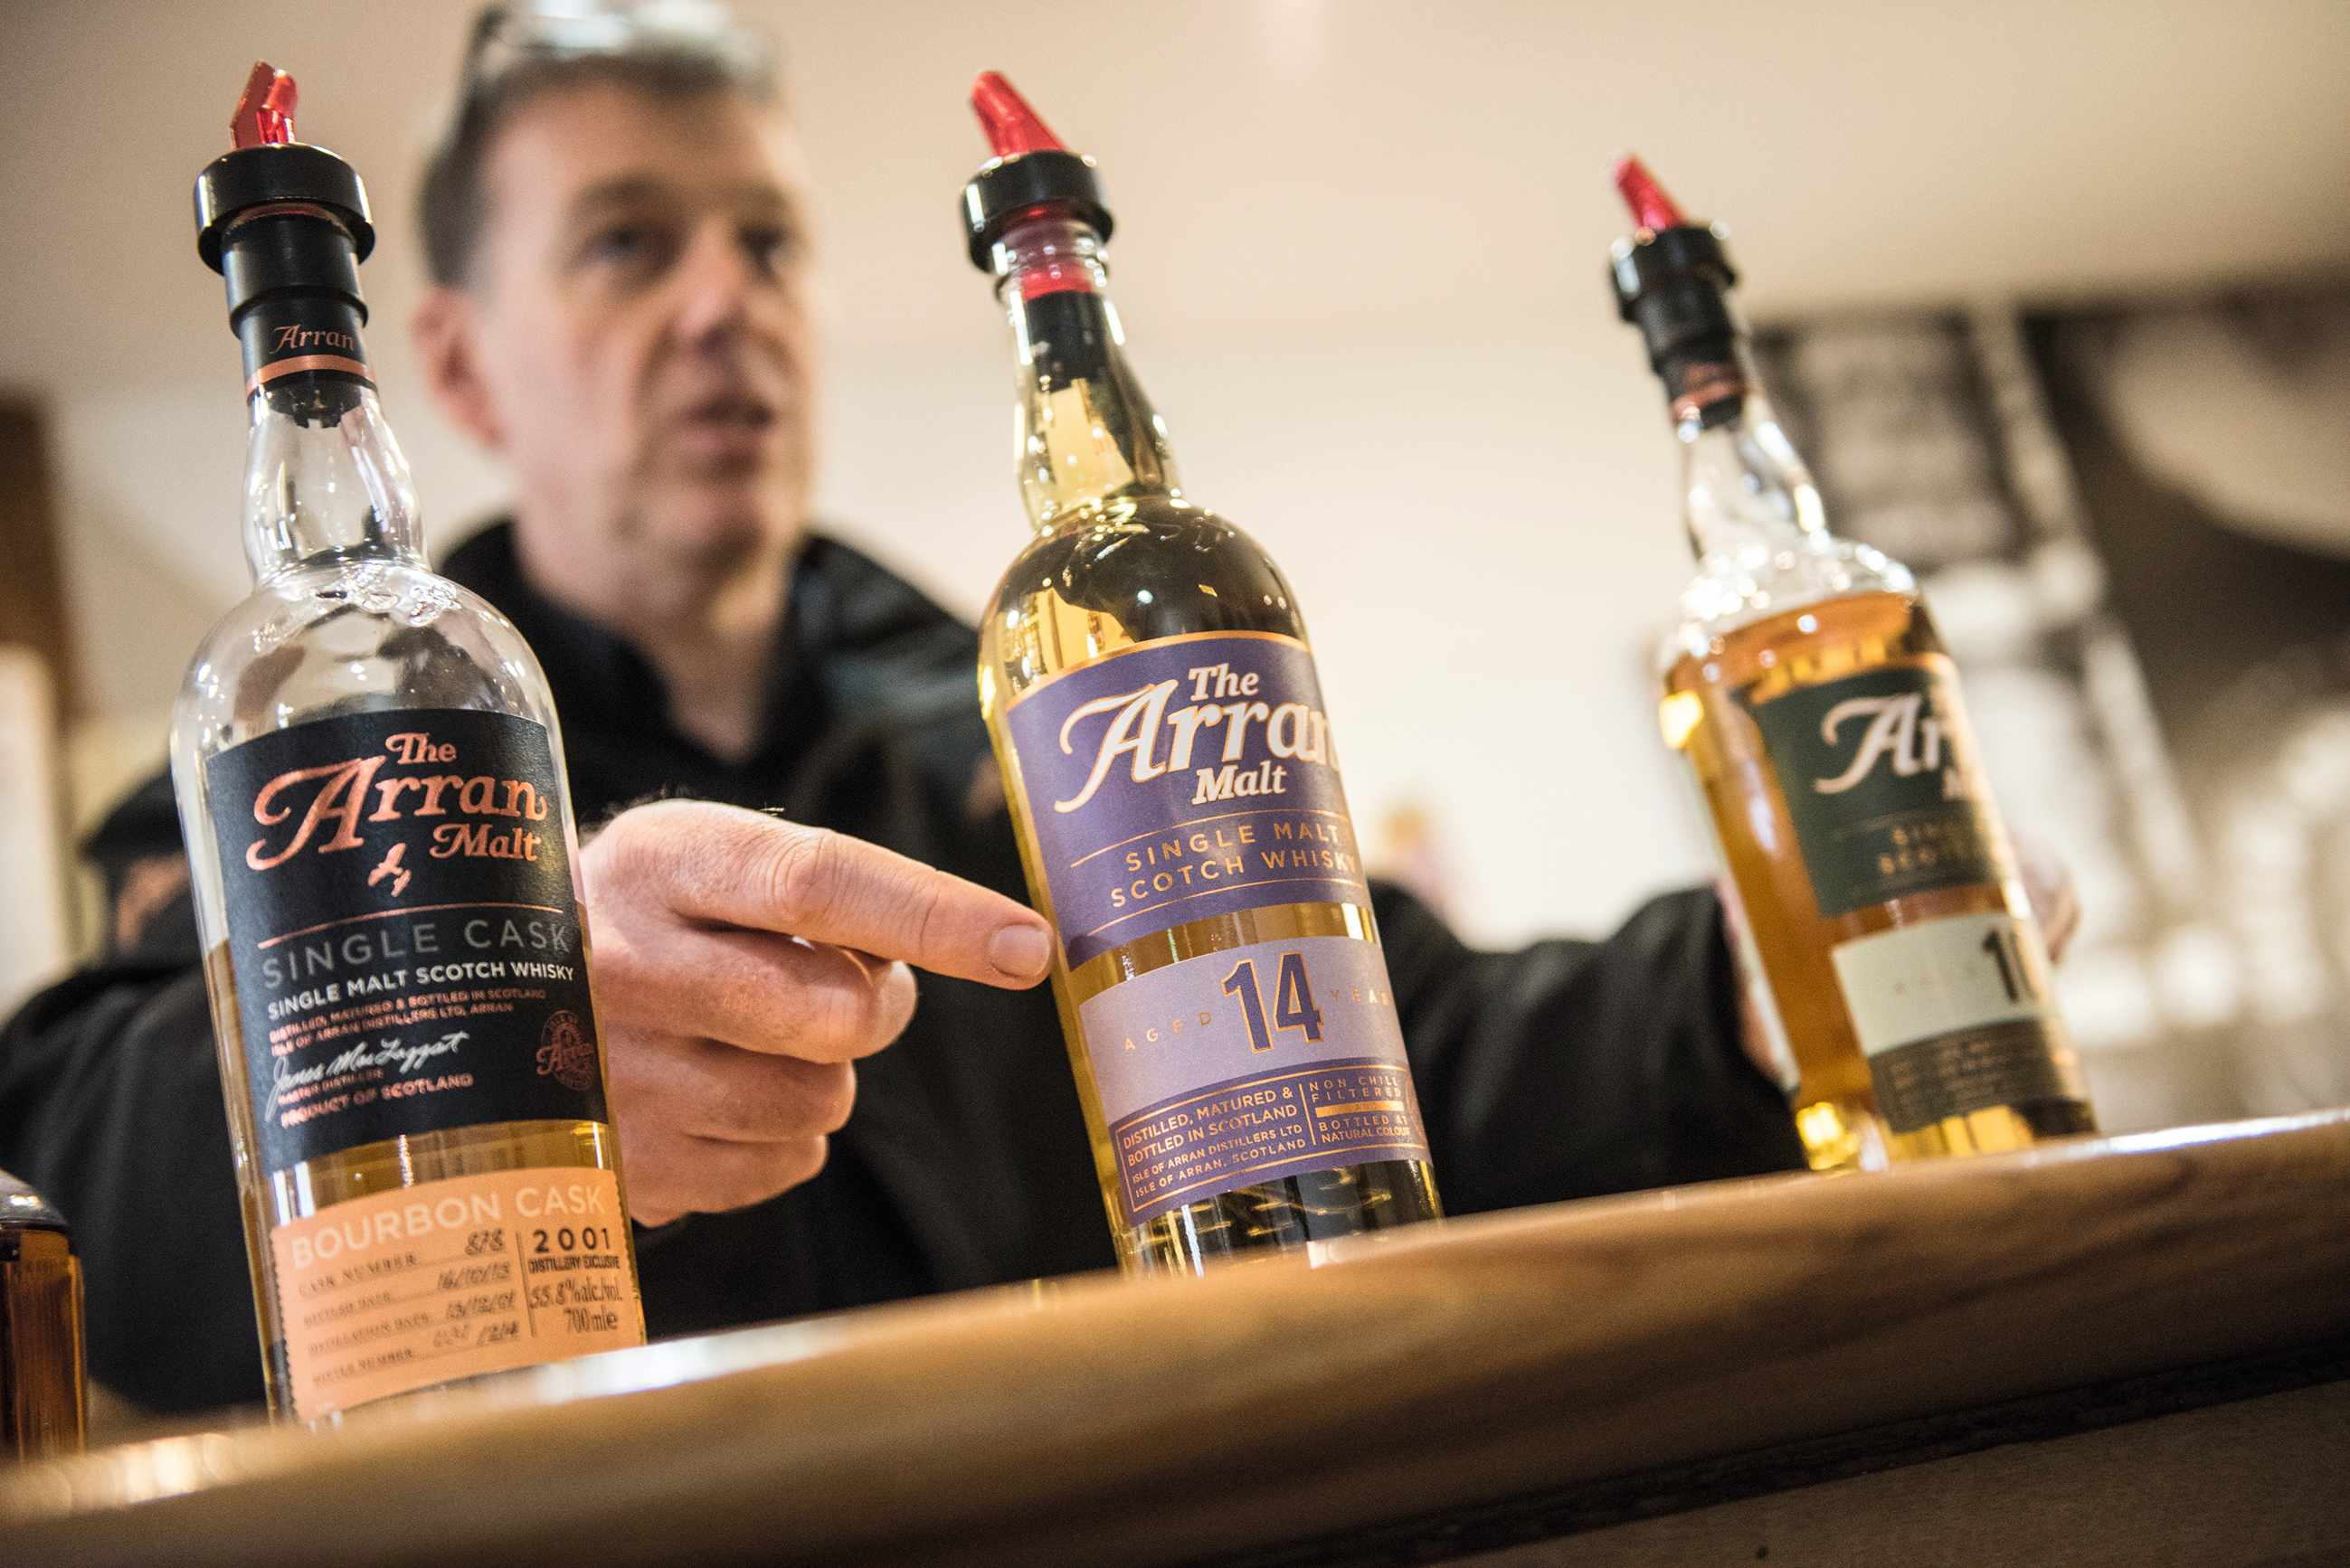 A line up of single malt whiskies from the Isle of Arran